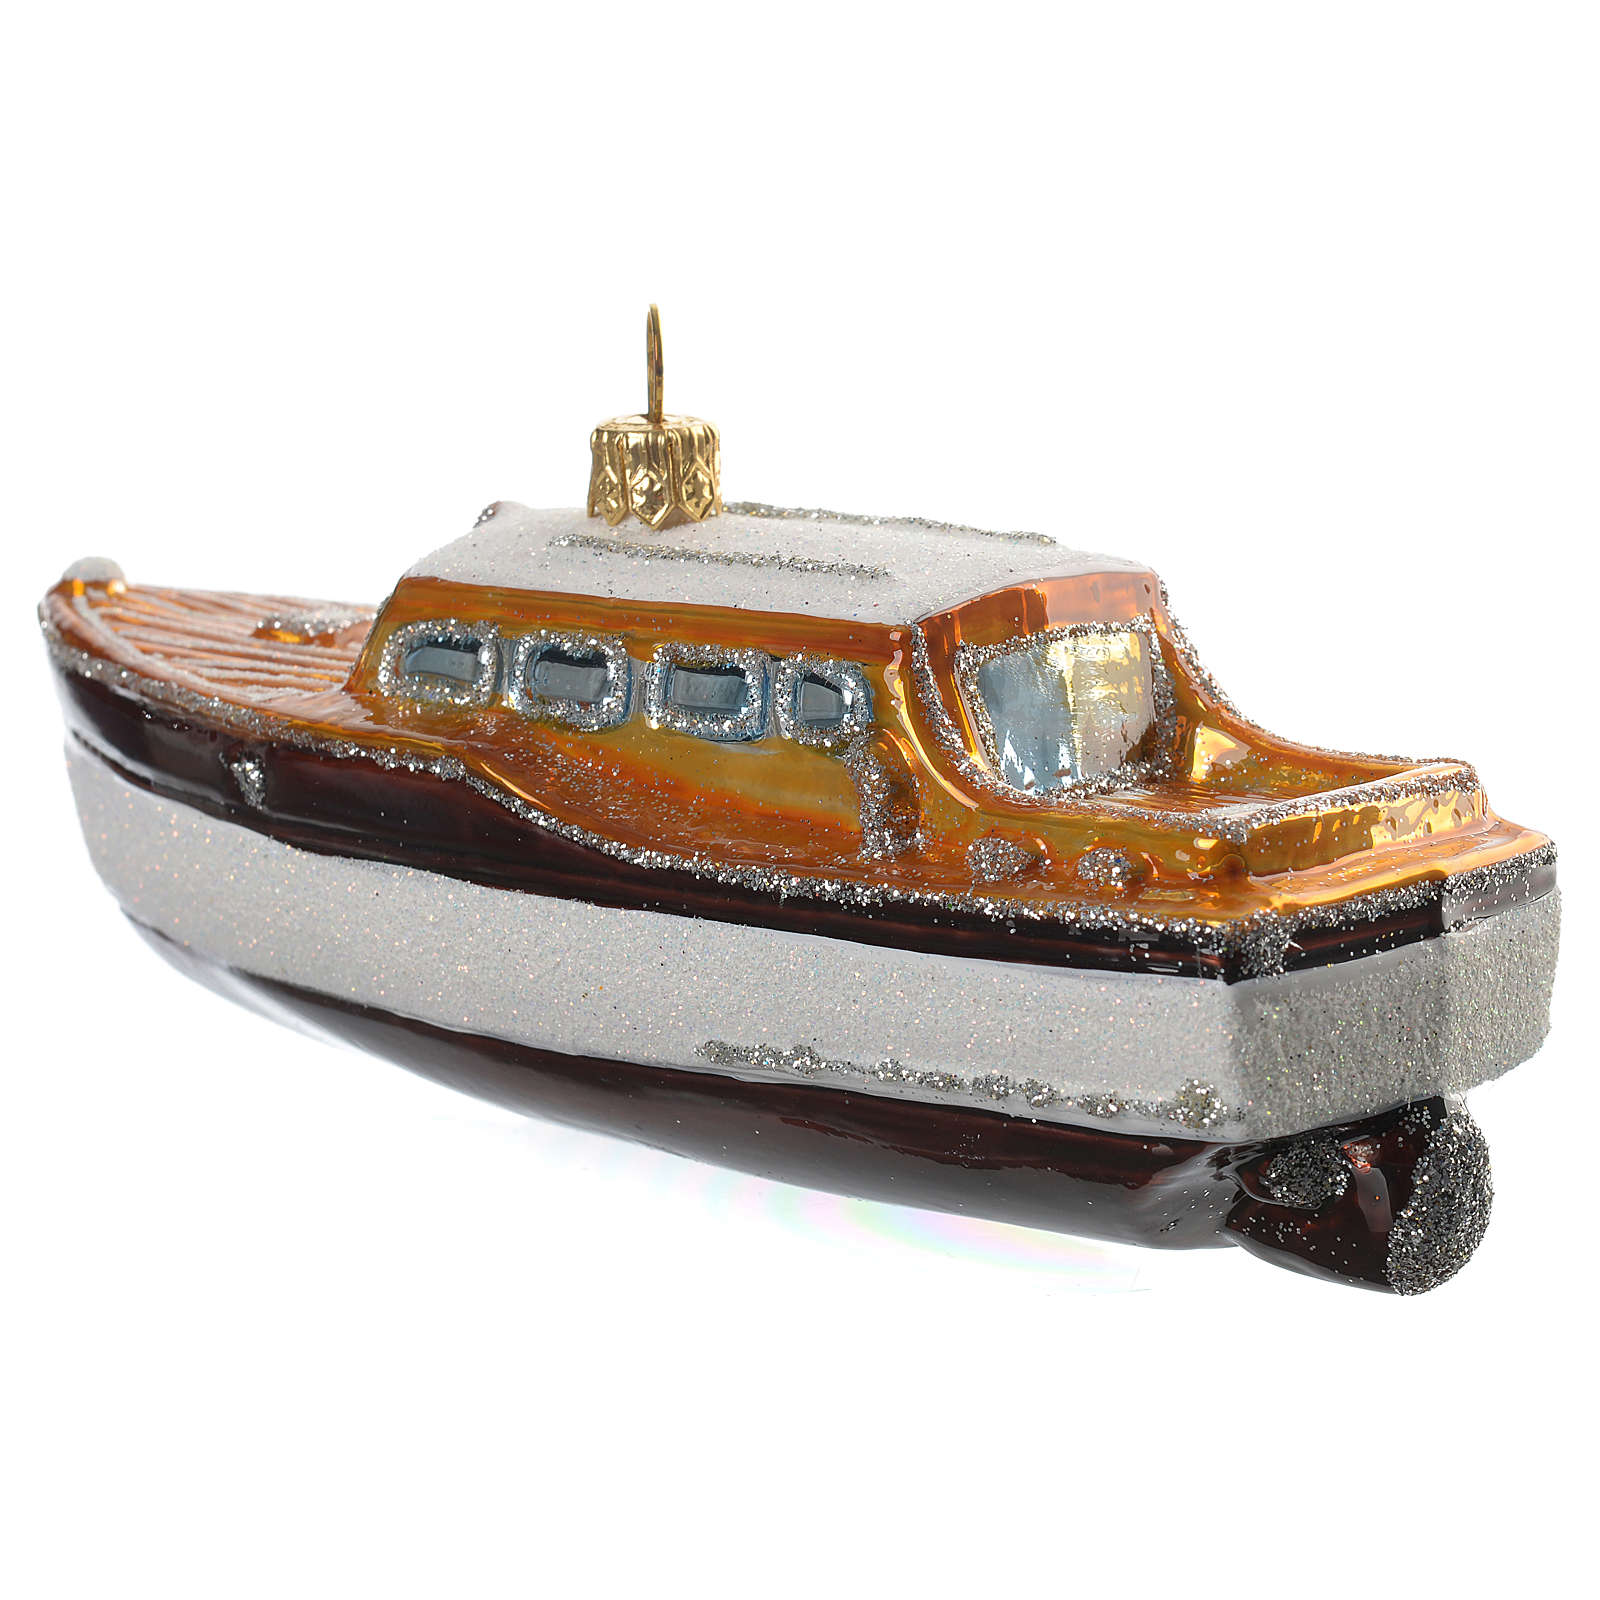 Blown glass Christmas ornament, yacht 4